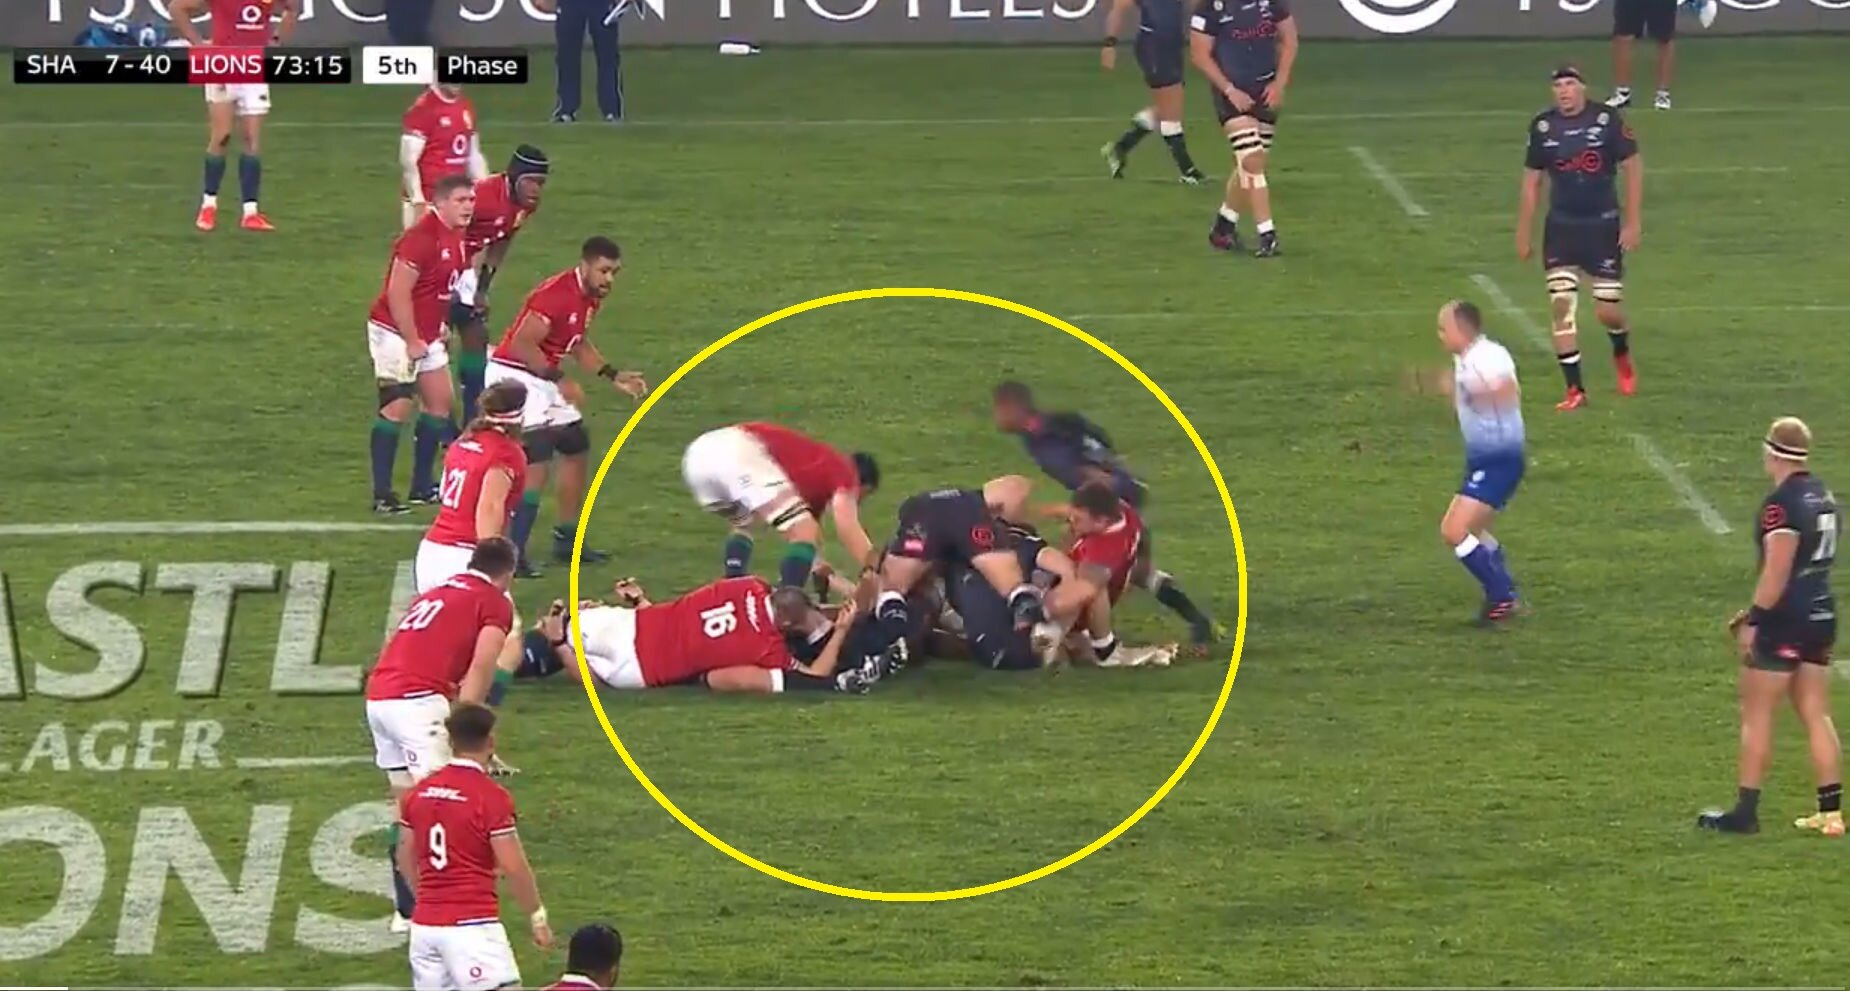 Daly moment of skill will leave Rassie and co crying themselves to sleep